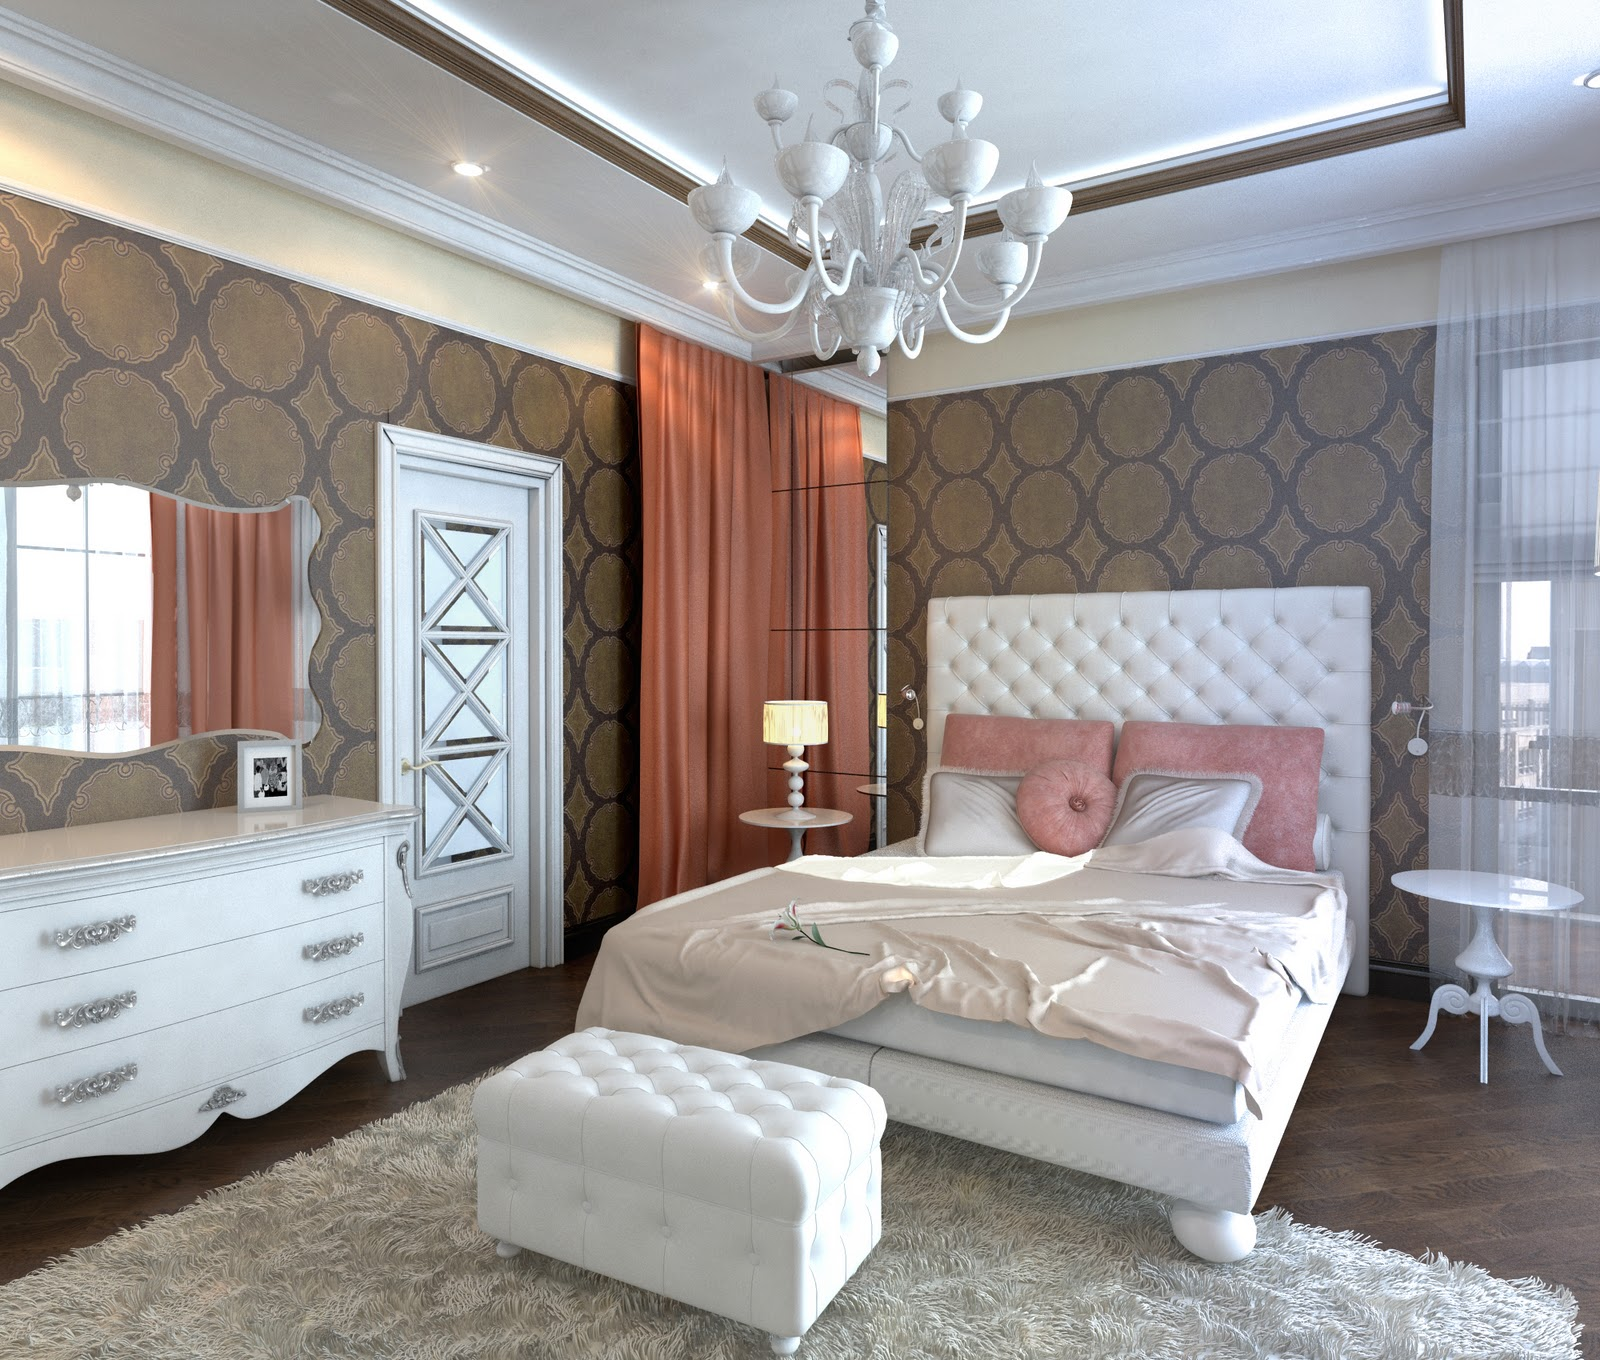 Designer Deko 3d Design Bedroom Art Deco